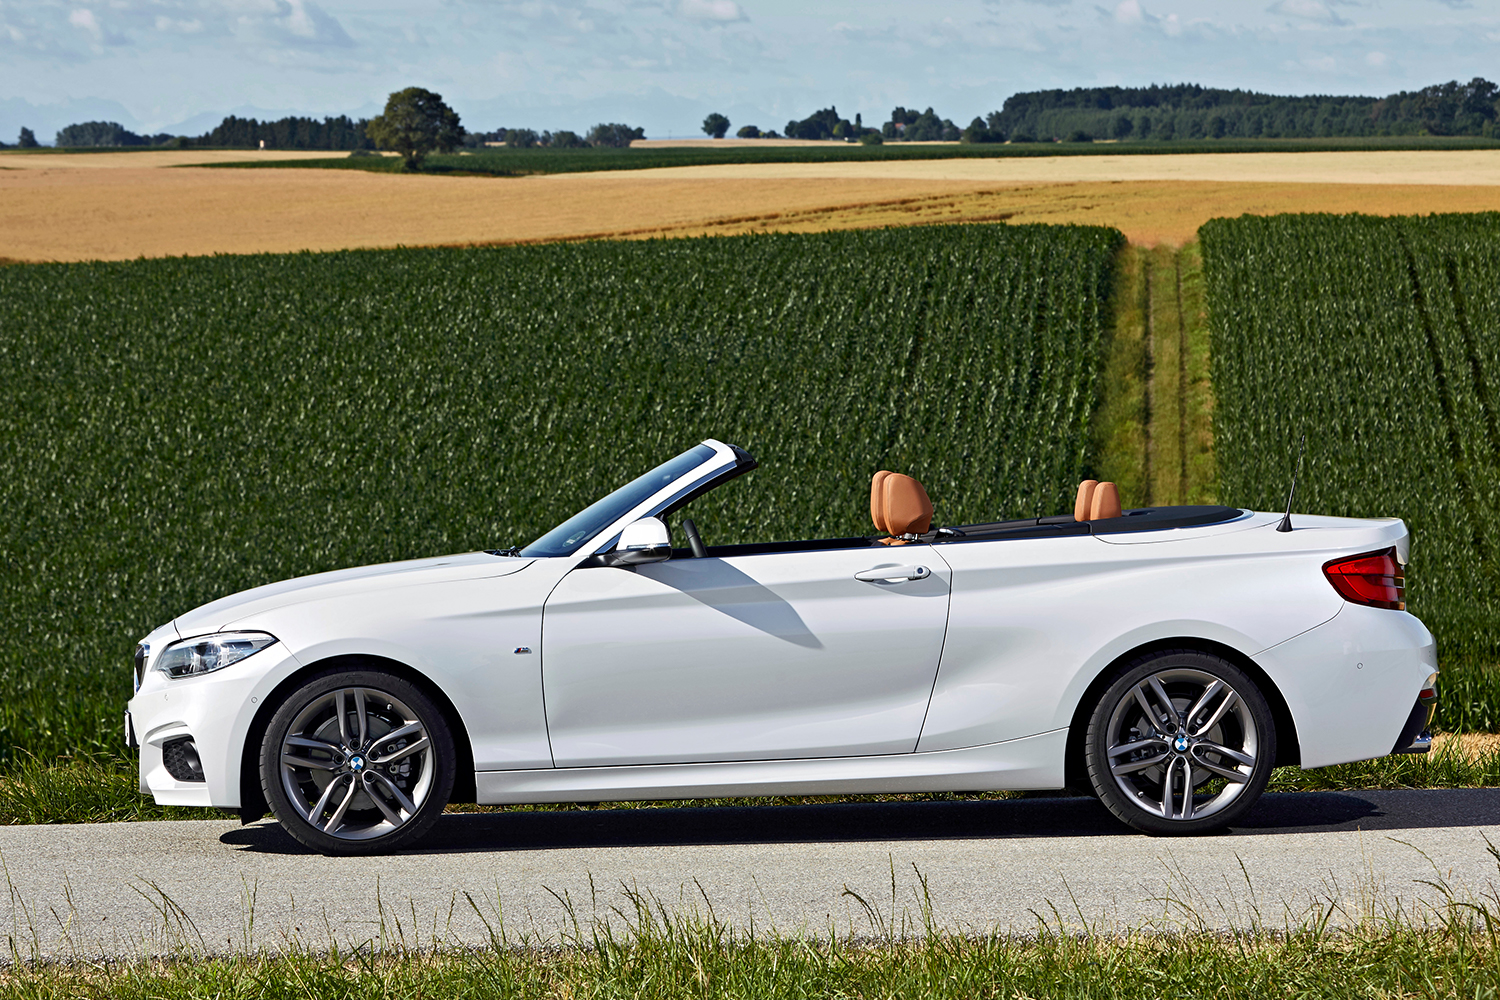 2020 BMW 2 Series convertible in the country